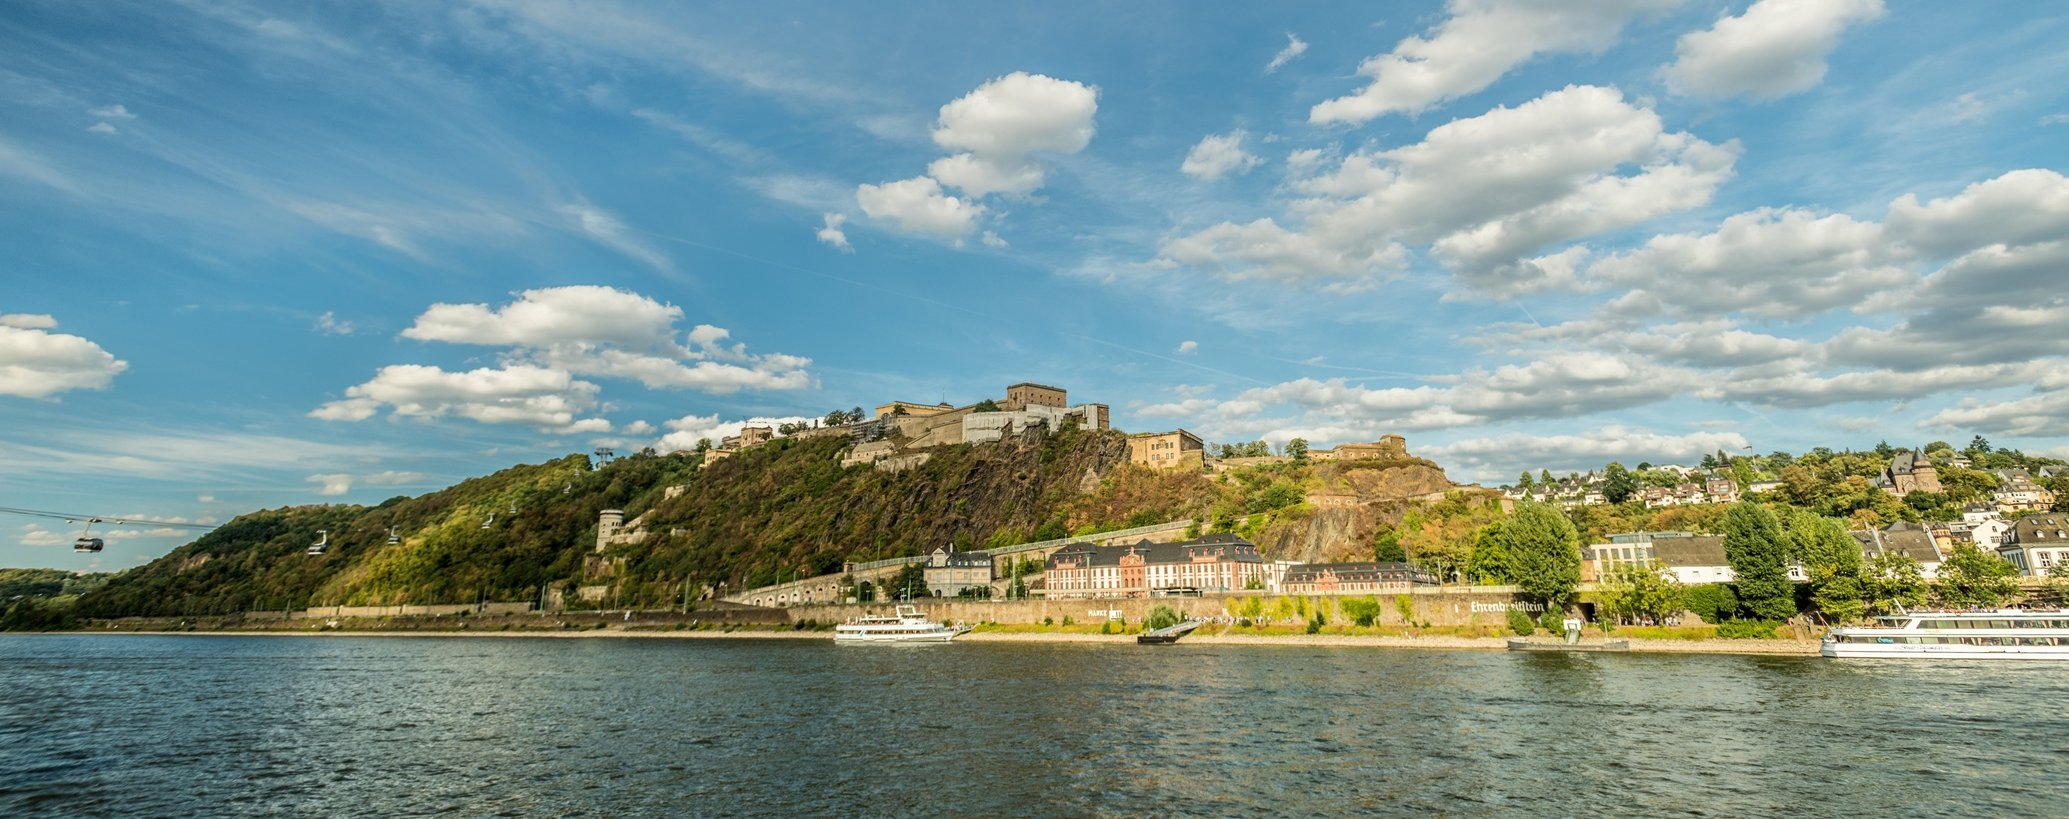 View of the cultural asset Ehrenbreitstein Fortress in Koblenz, Romantic Rhine